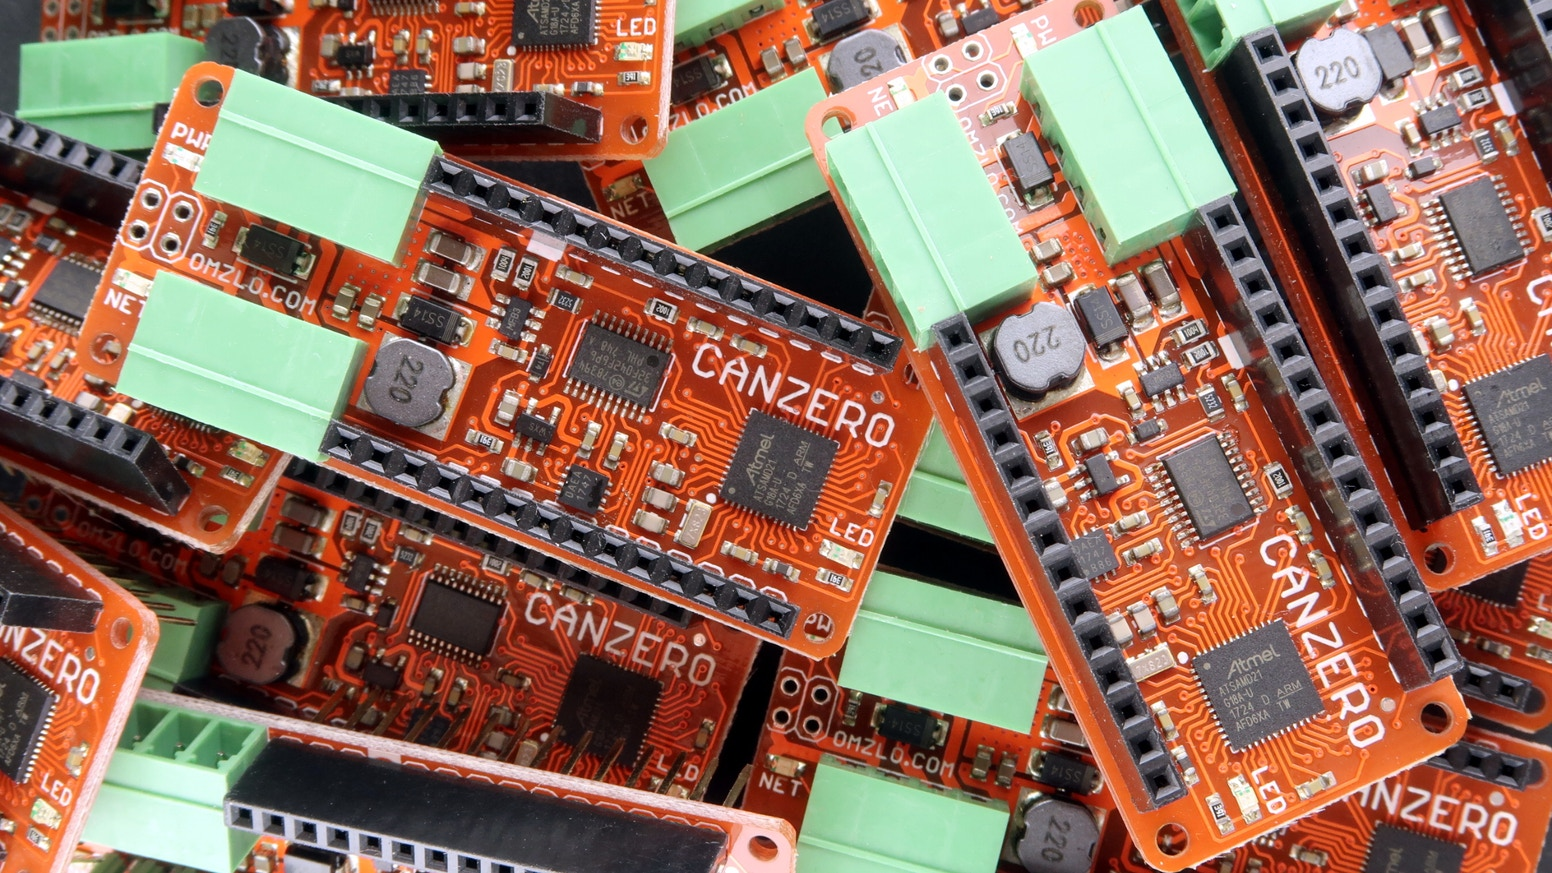 Nocan The Wired Iot Platform For Makers By Alain Pannetrat Arduino Projects Esp8266 Wireless Web Server Electronics You Sometimes Wi Fi Or Bluetooth Is Not Answer So We Made An